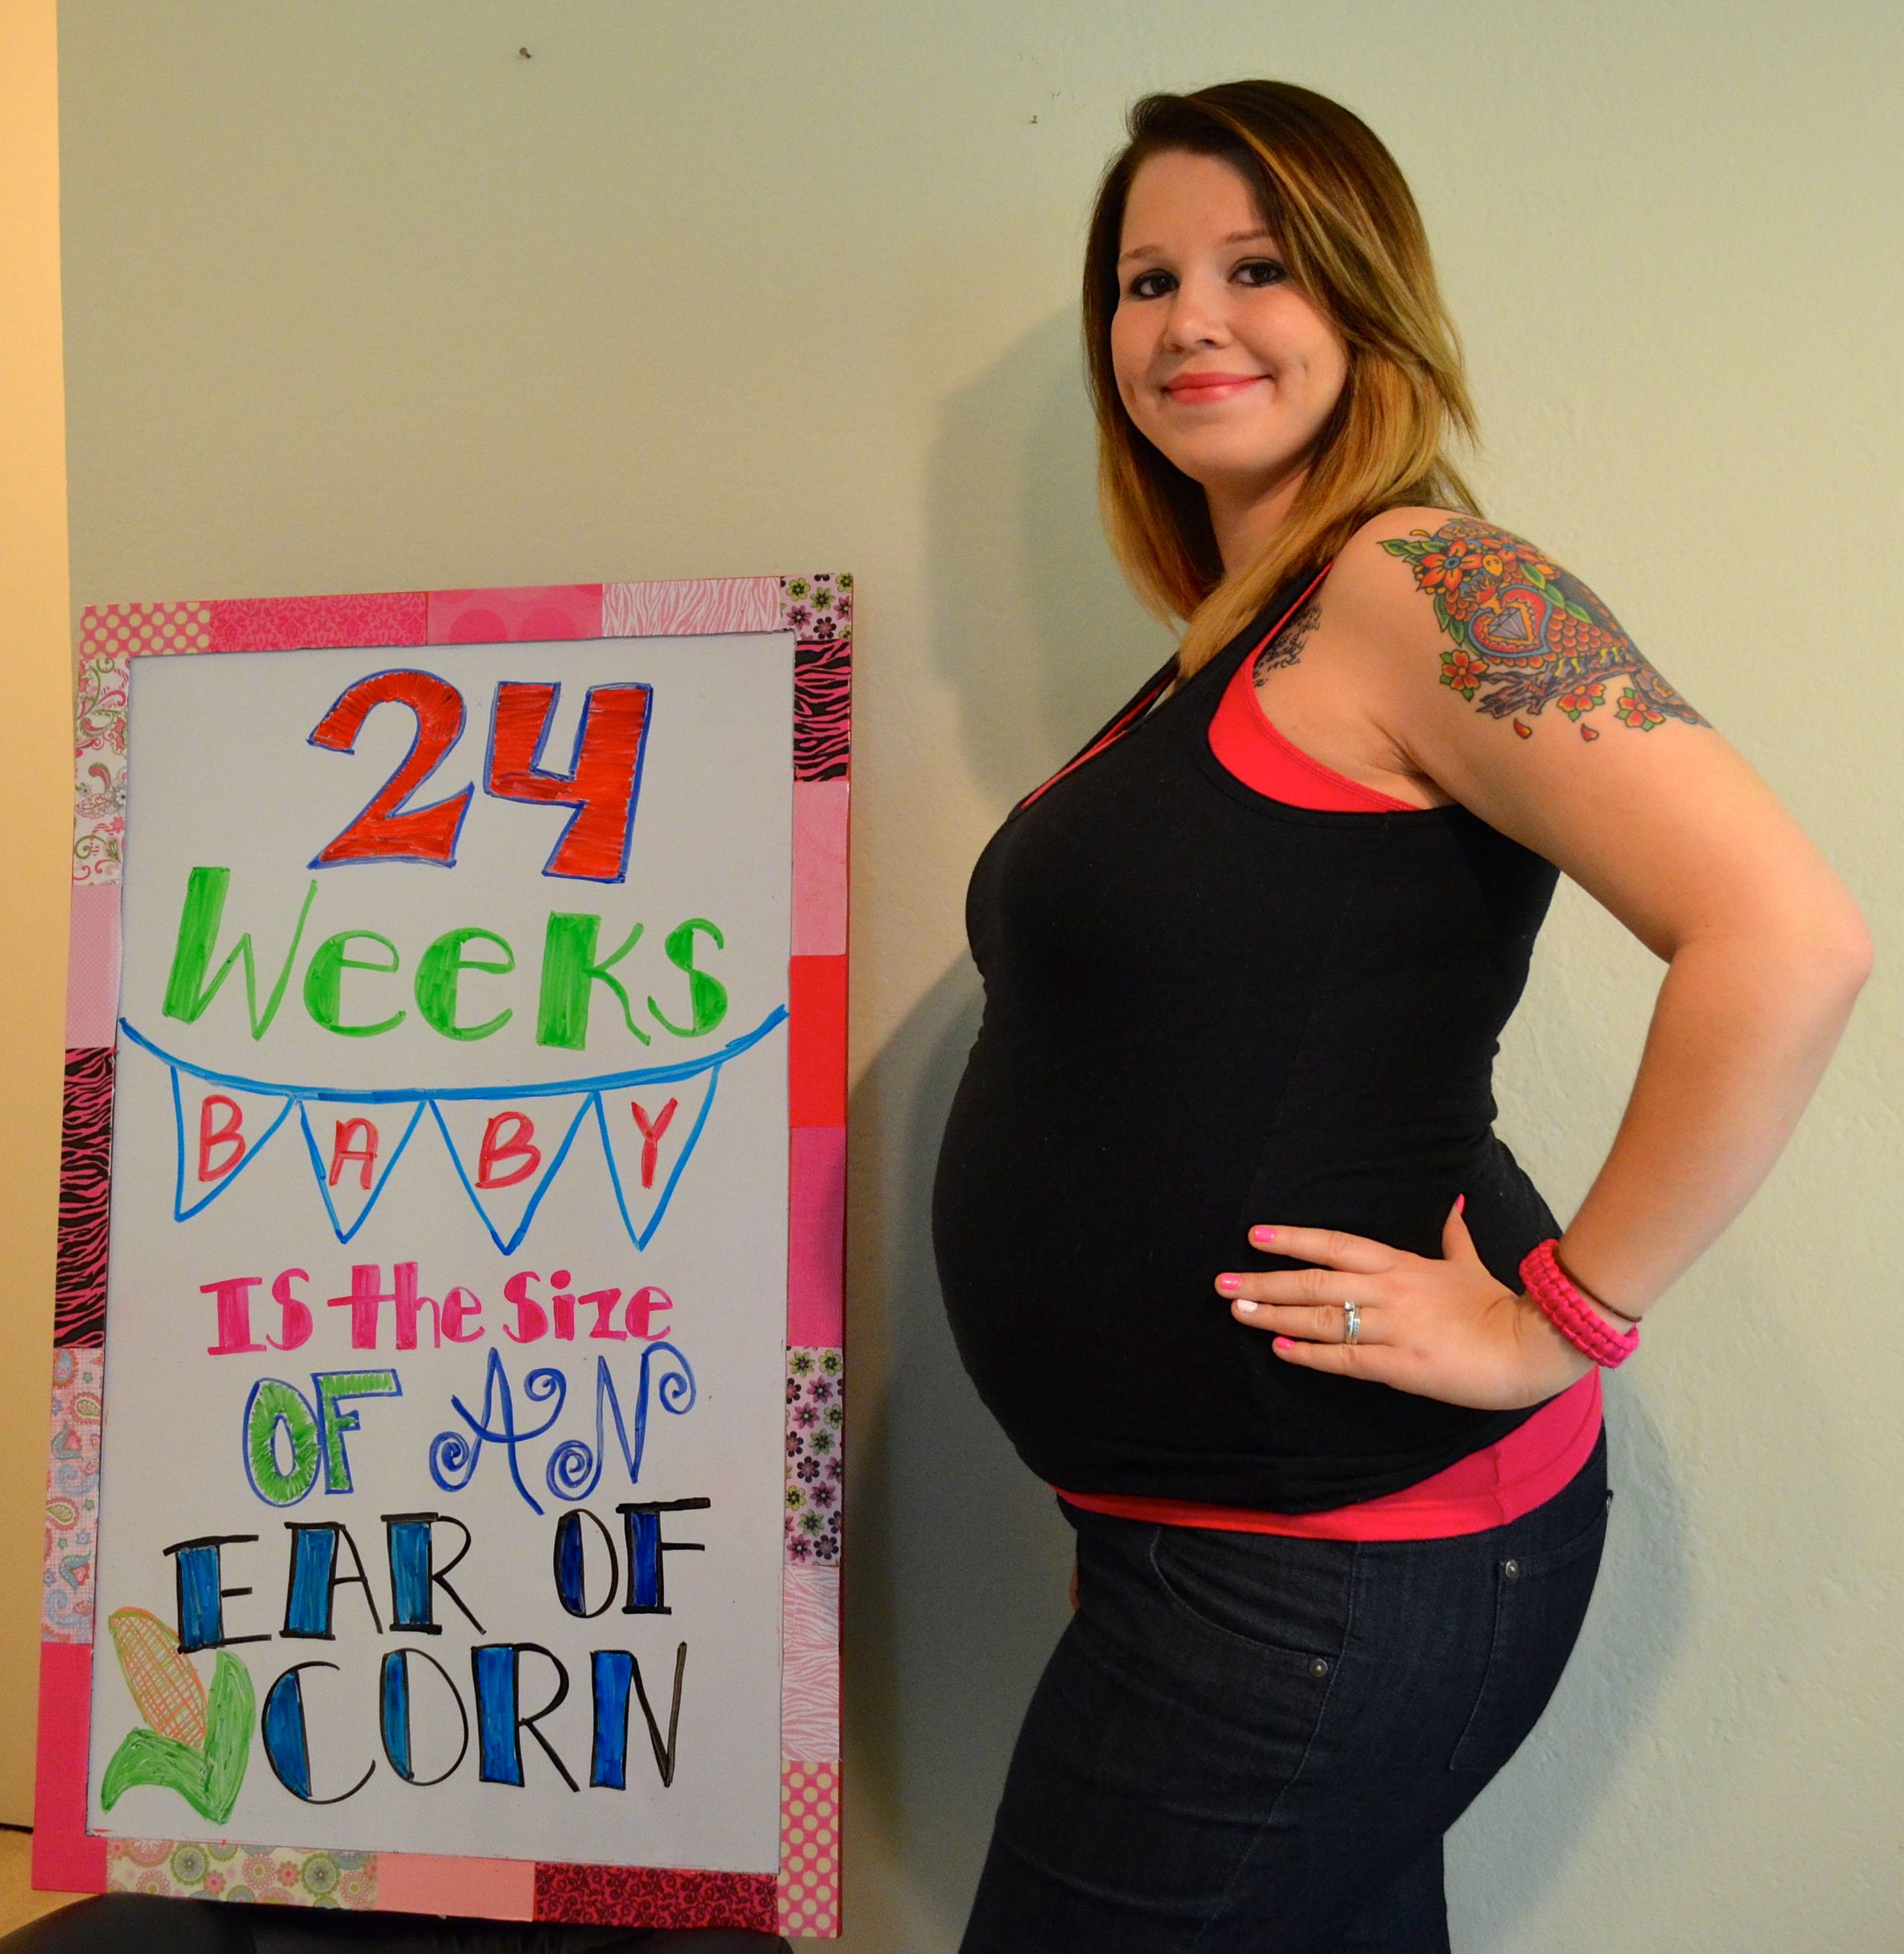 24 weeks! Baby is the size of an ear of corn! # ...